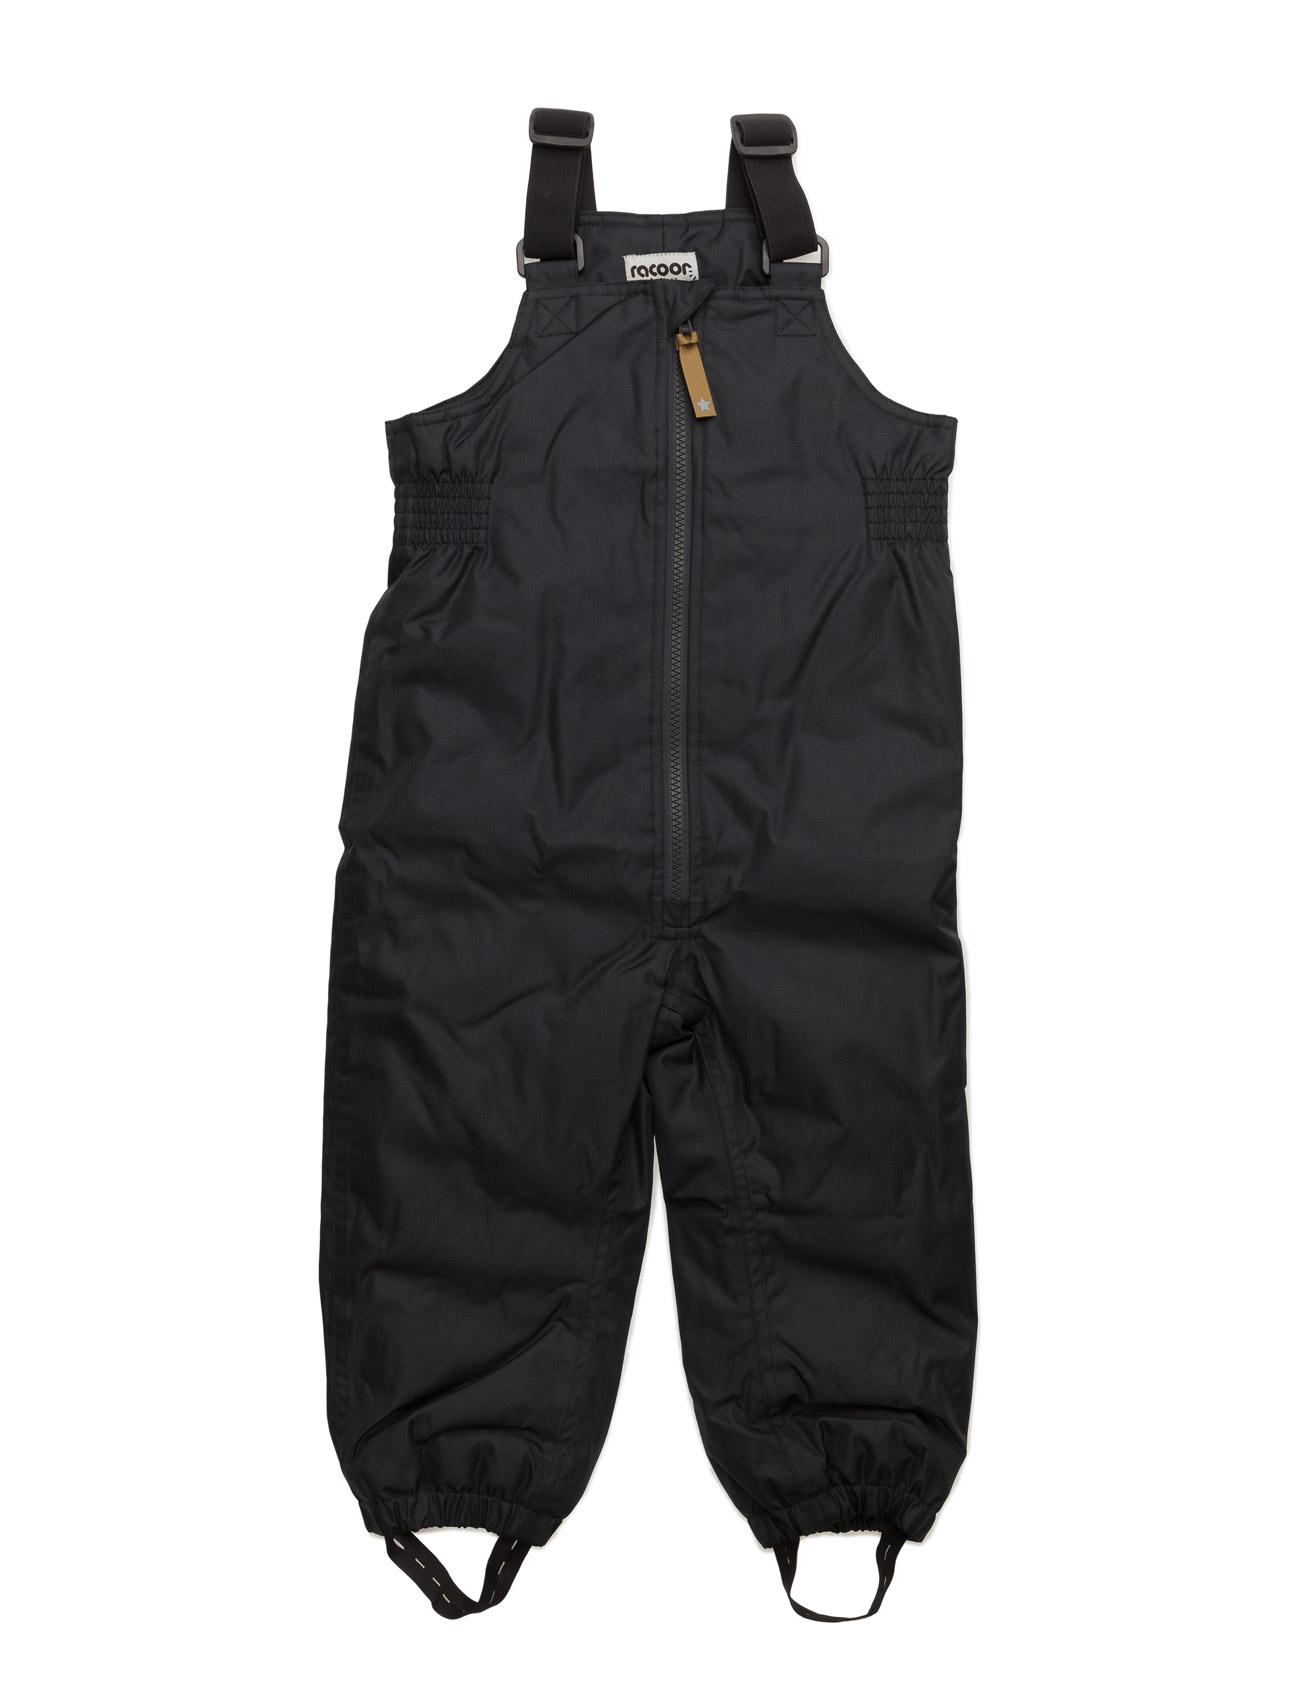 Sixten Baby Solid Racoon Outdoor Thermo & Softshells til Børn i